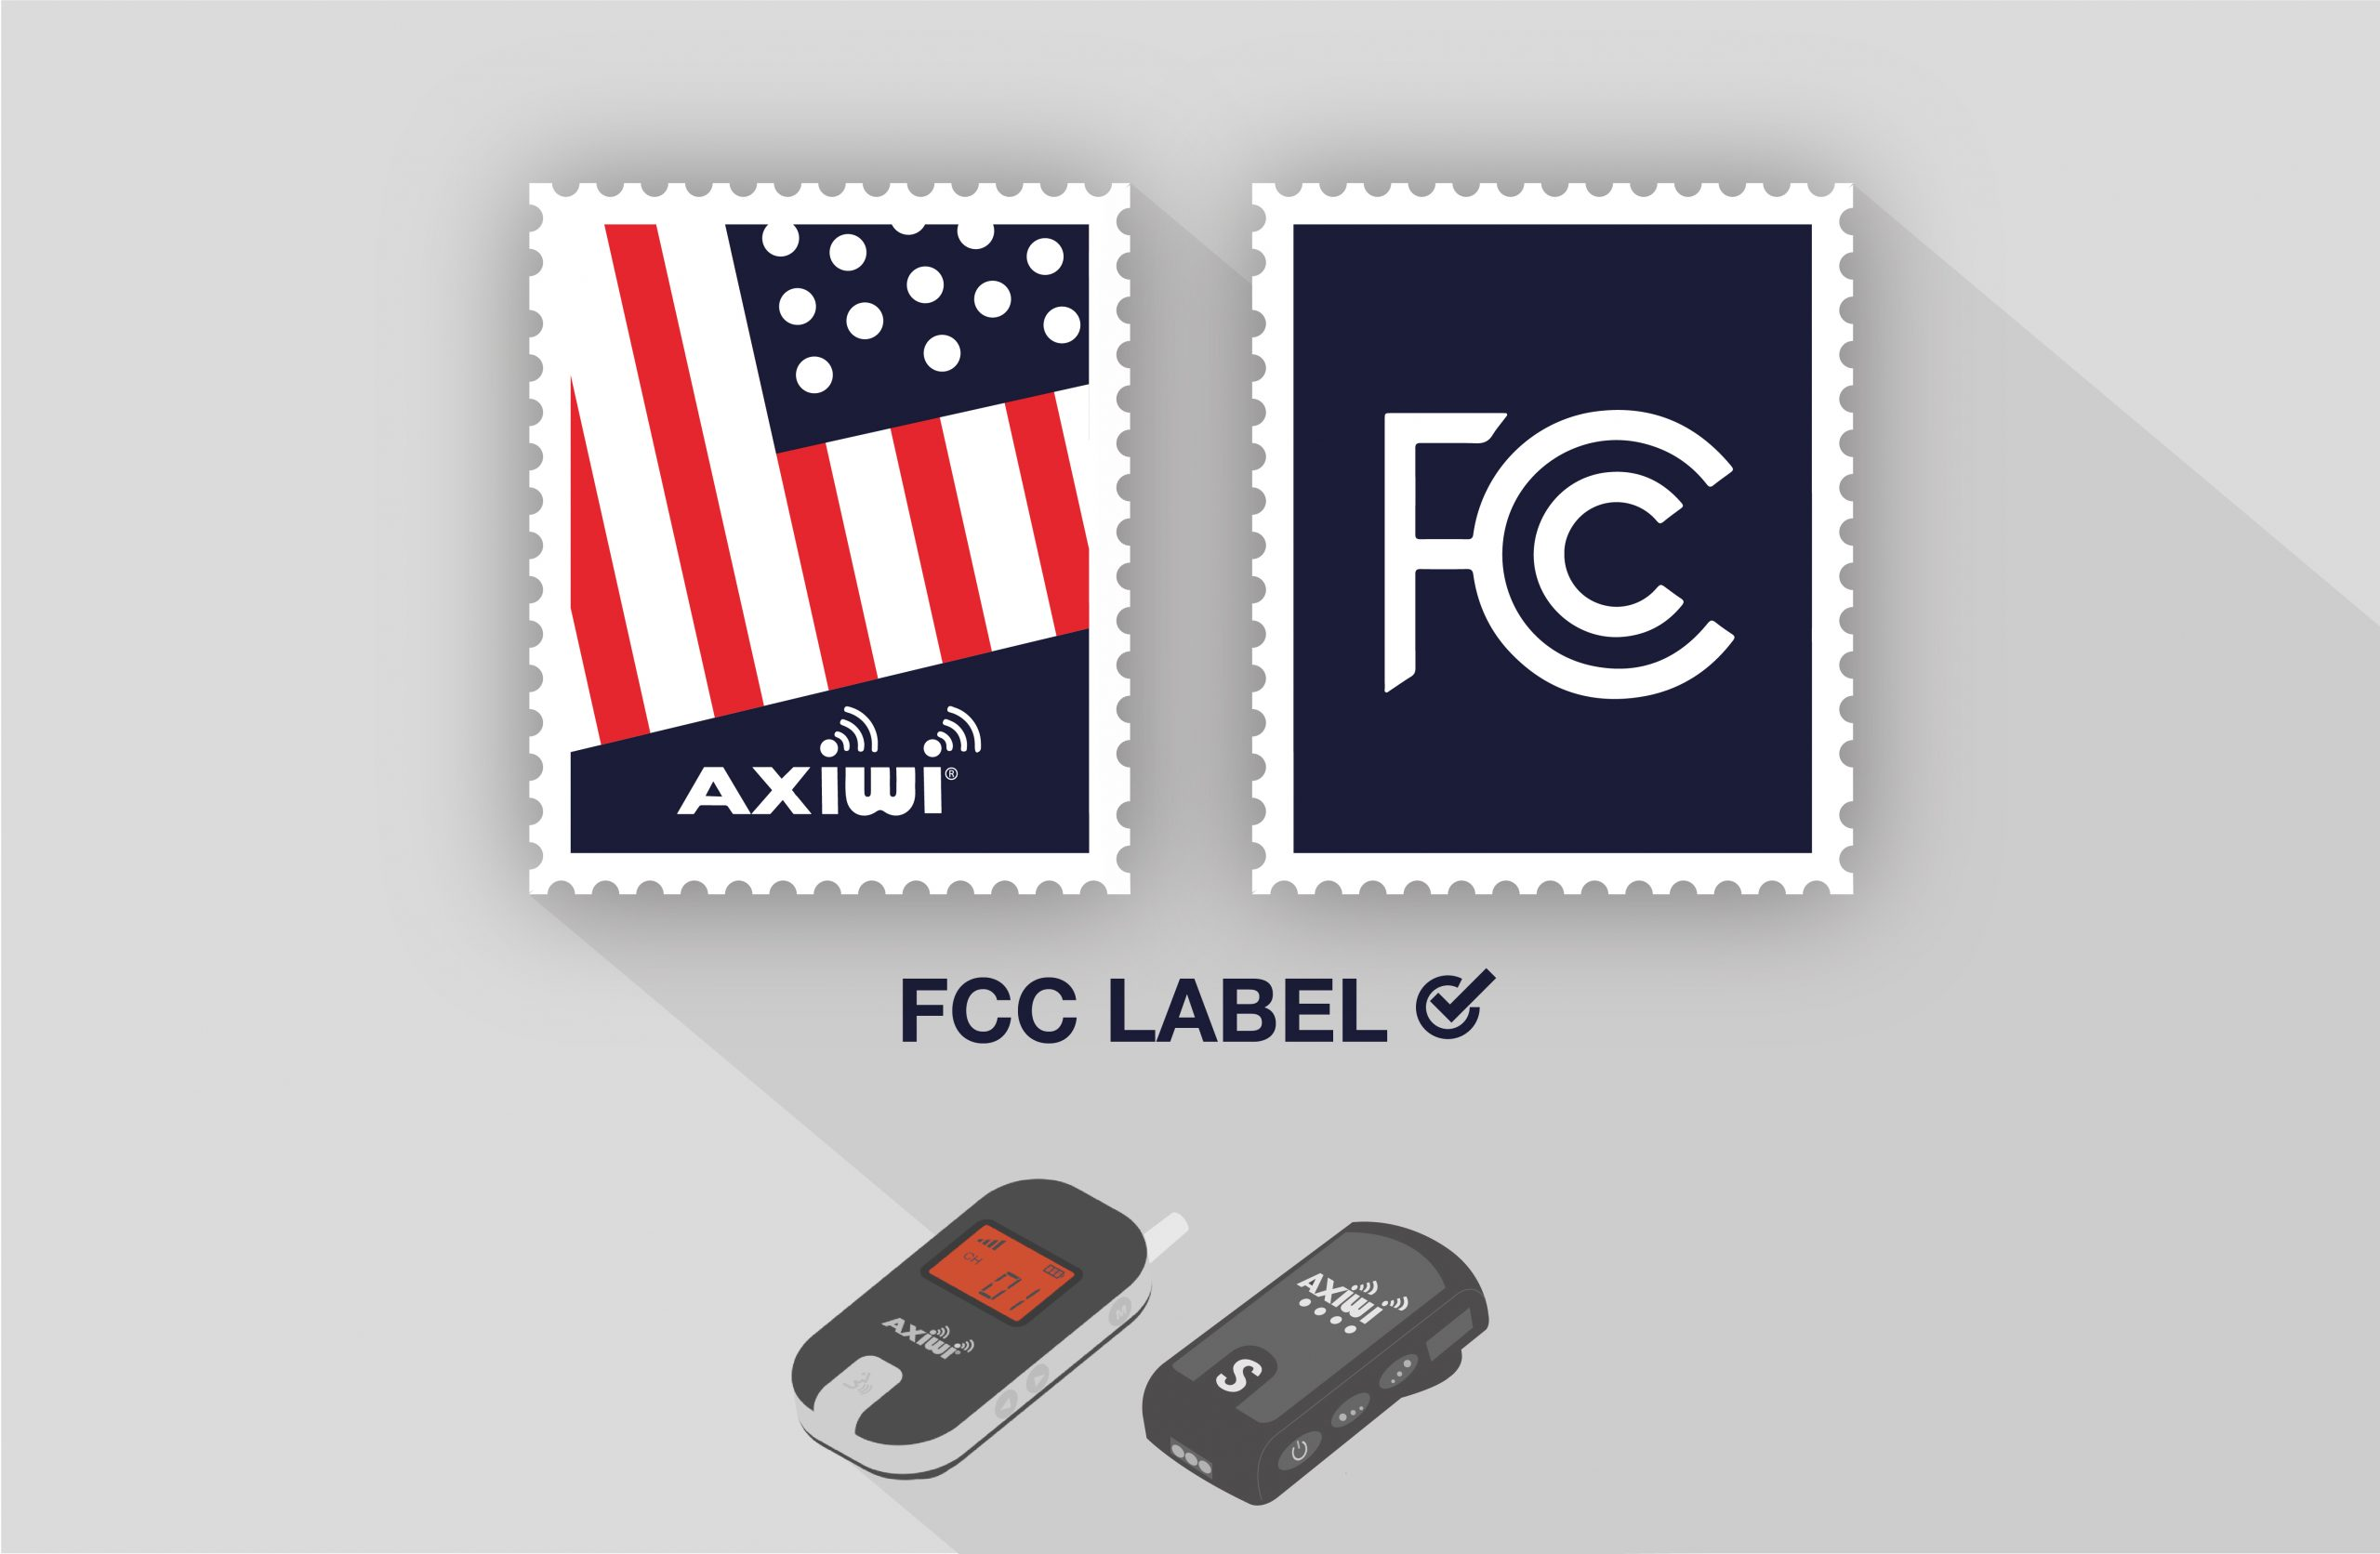 AXIWI-officially-certified-United-States-America-FCC-label-blog